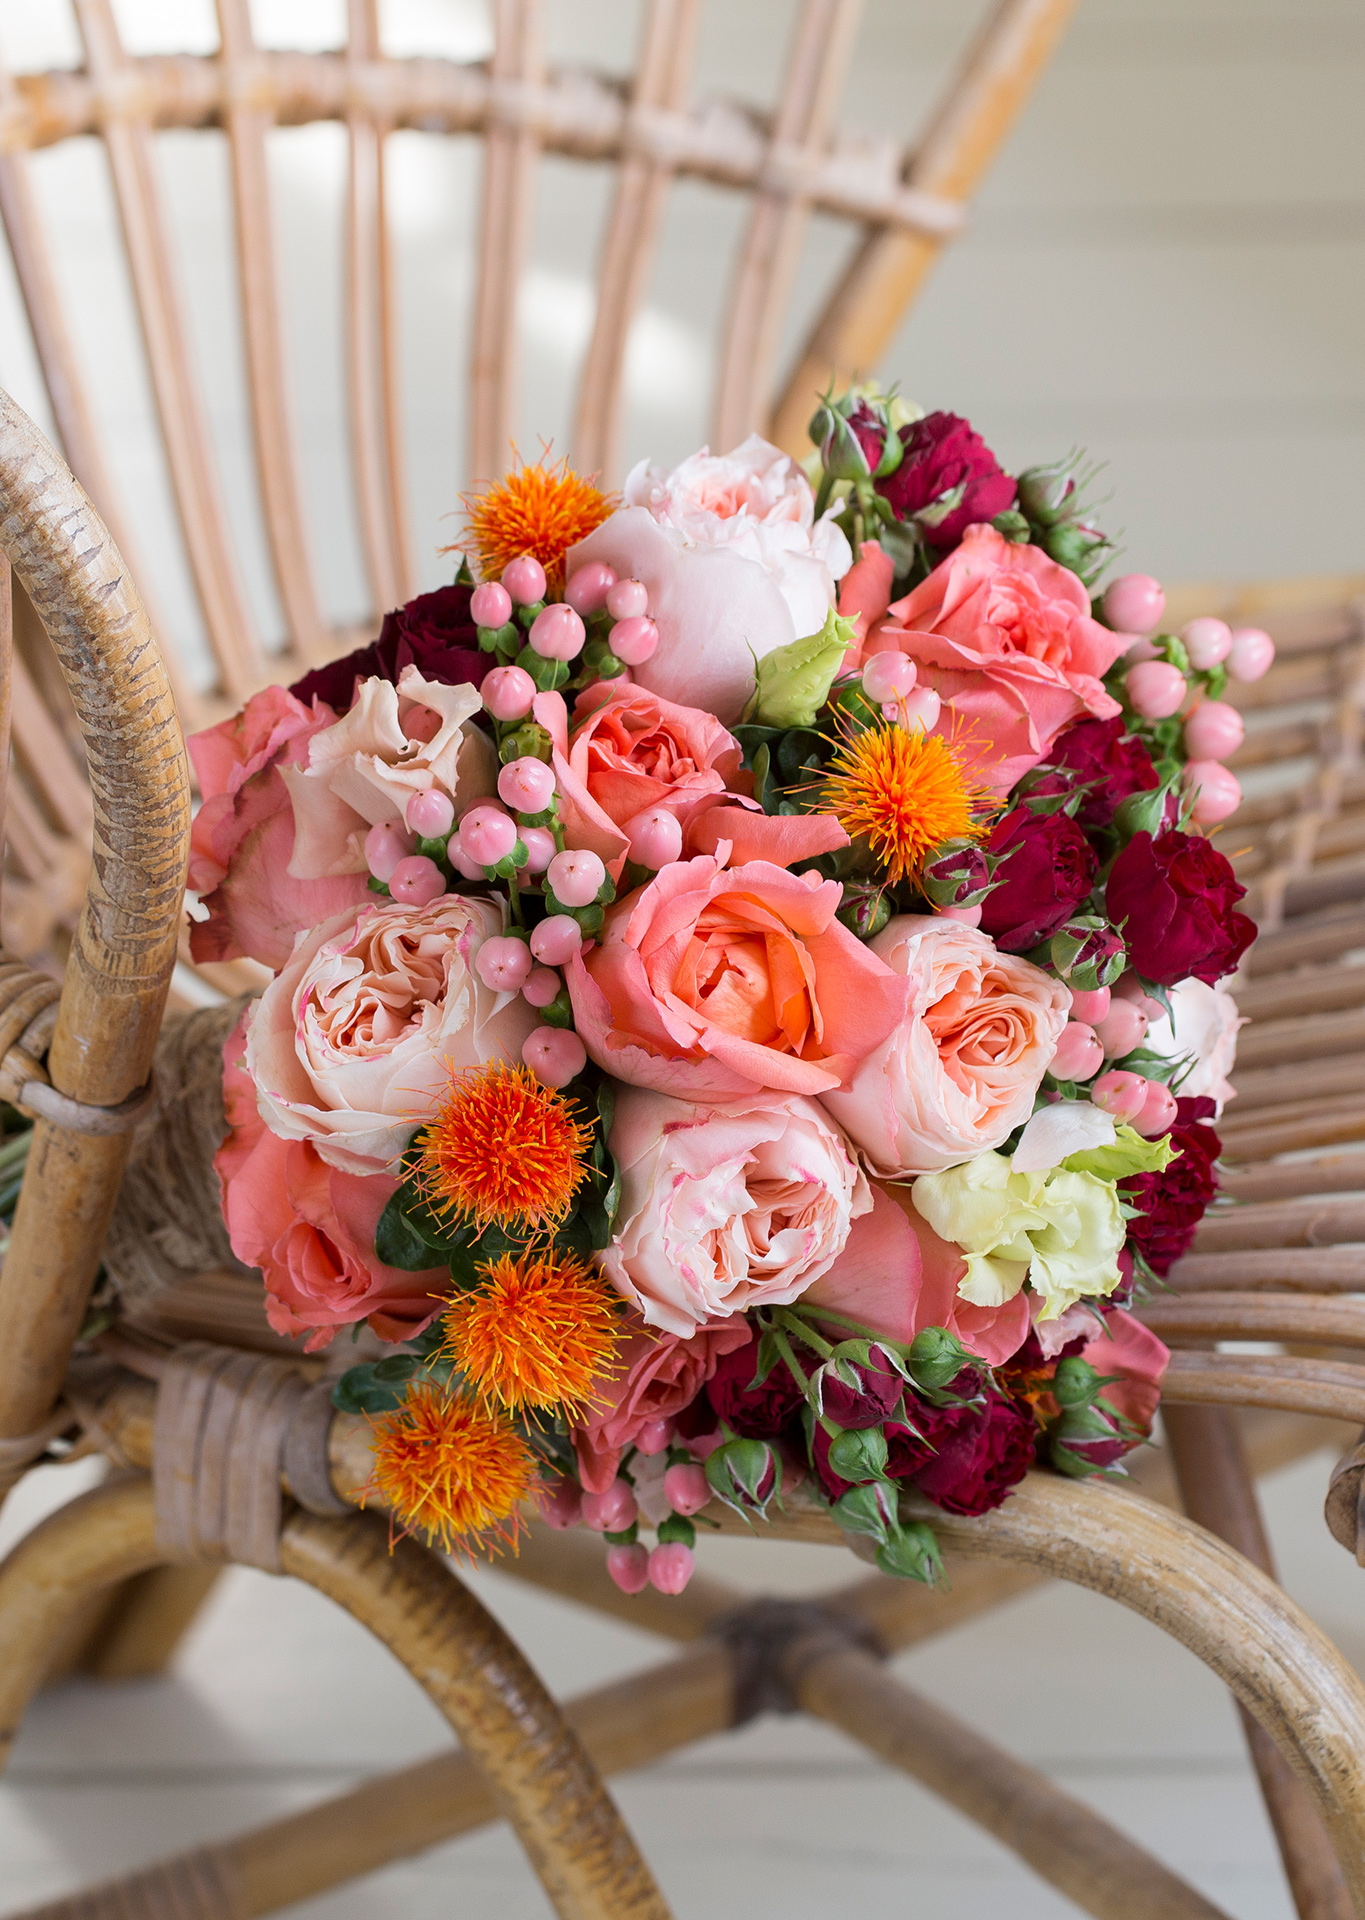 Wonderful salmon/coral coloring in this stunning bouquet with Rene Goscinny, Red Sensation and Princess Sakura roses.